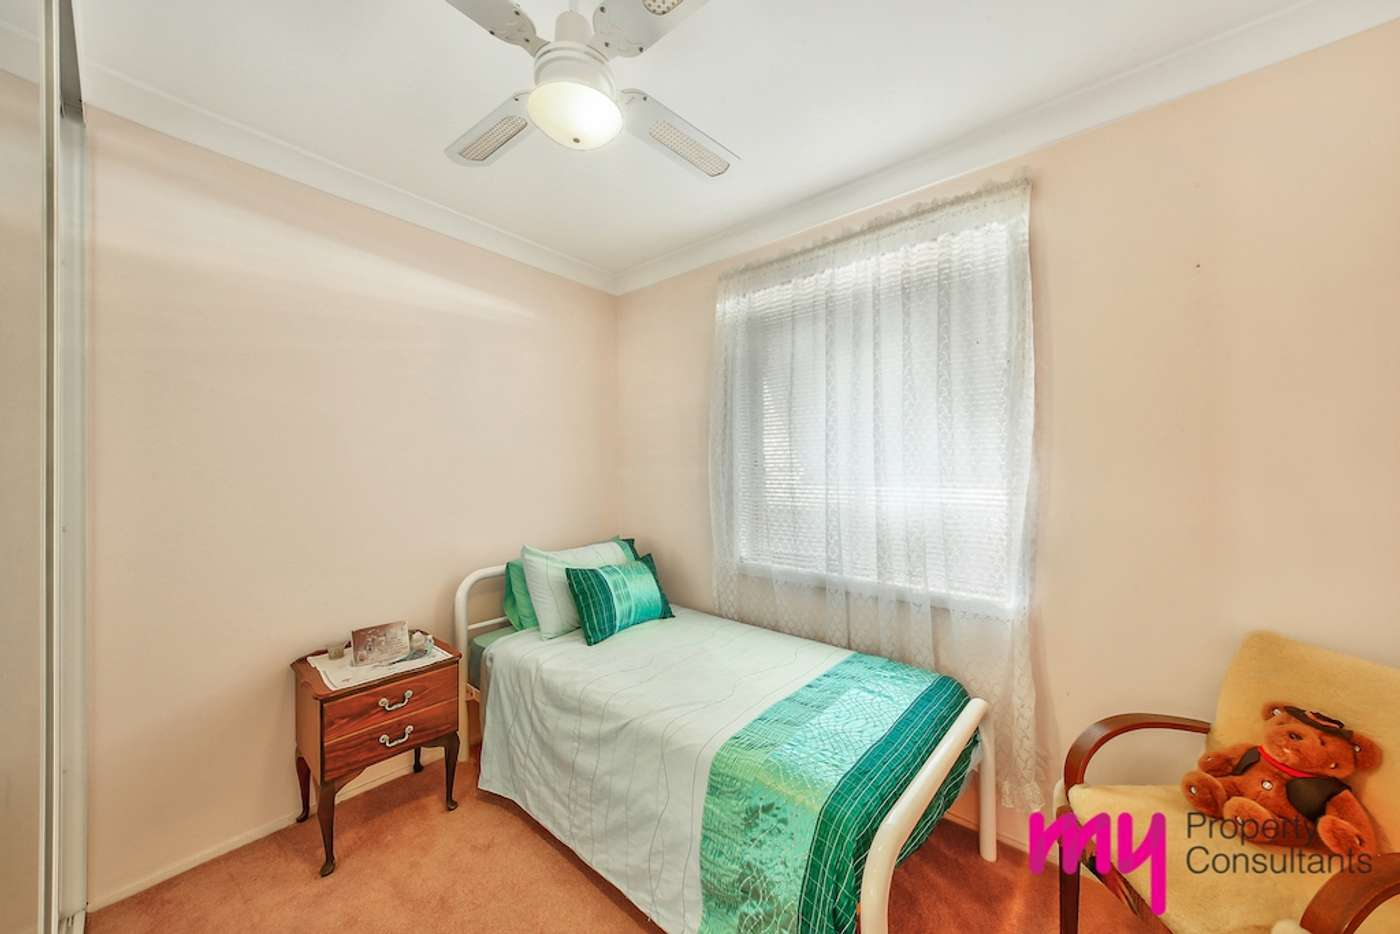 Sixth view of Homely house listing, 6 Hume Street, Campbelltown NSW 2560